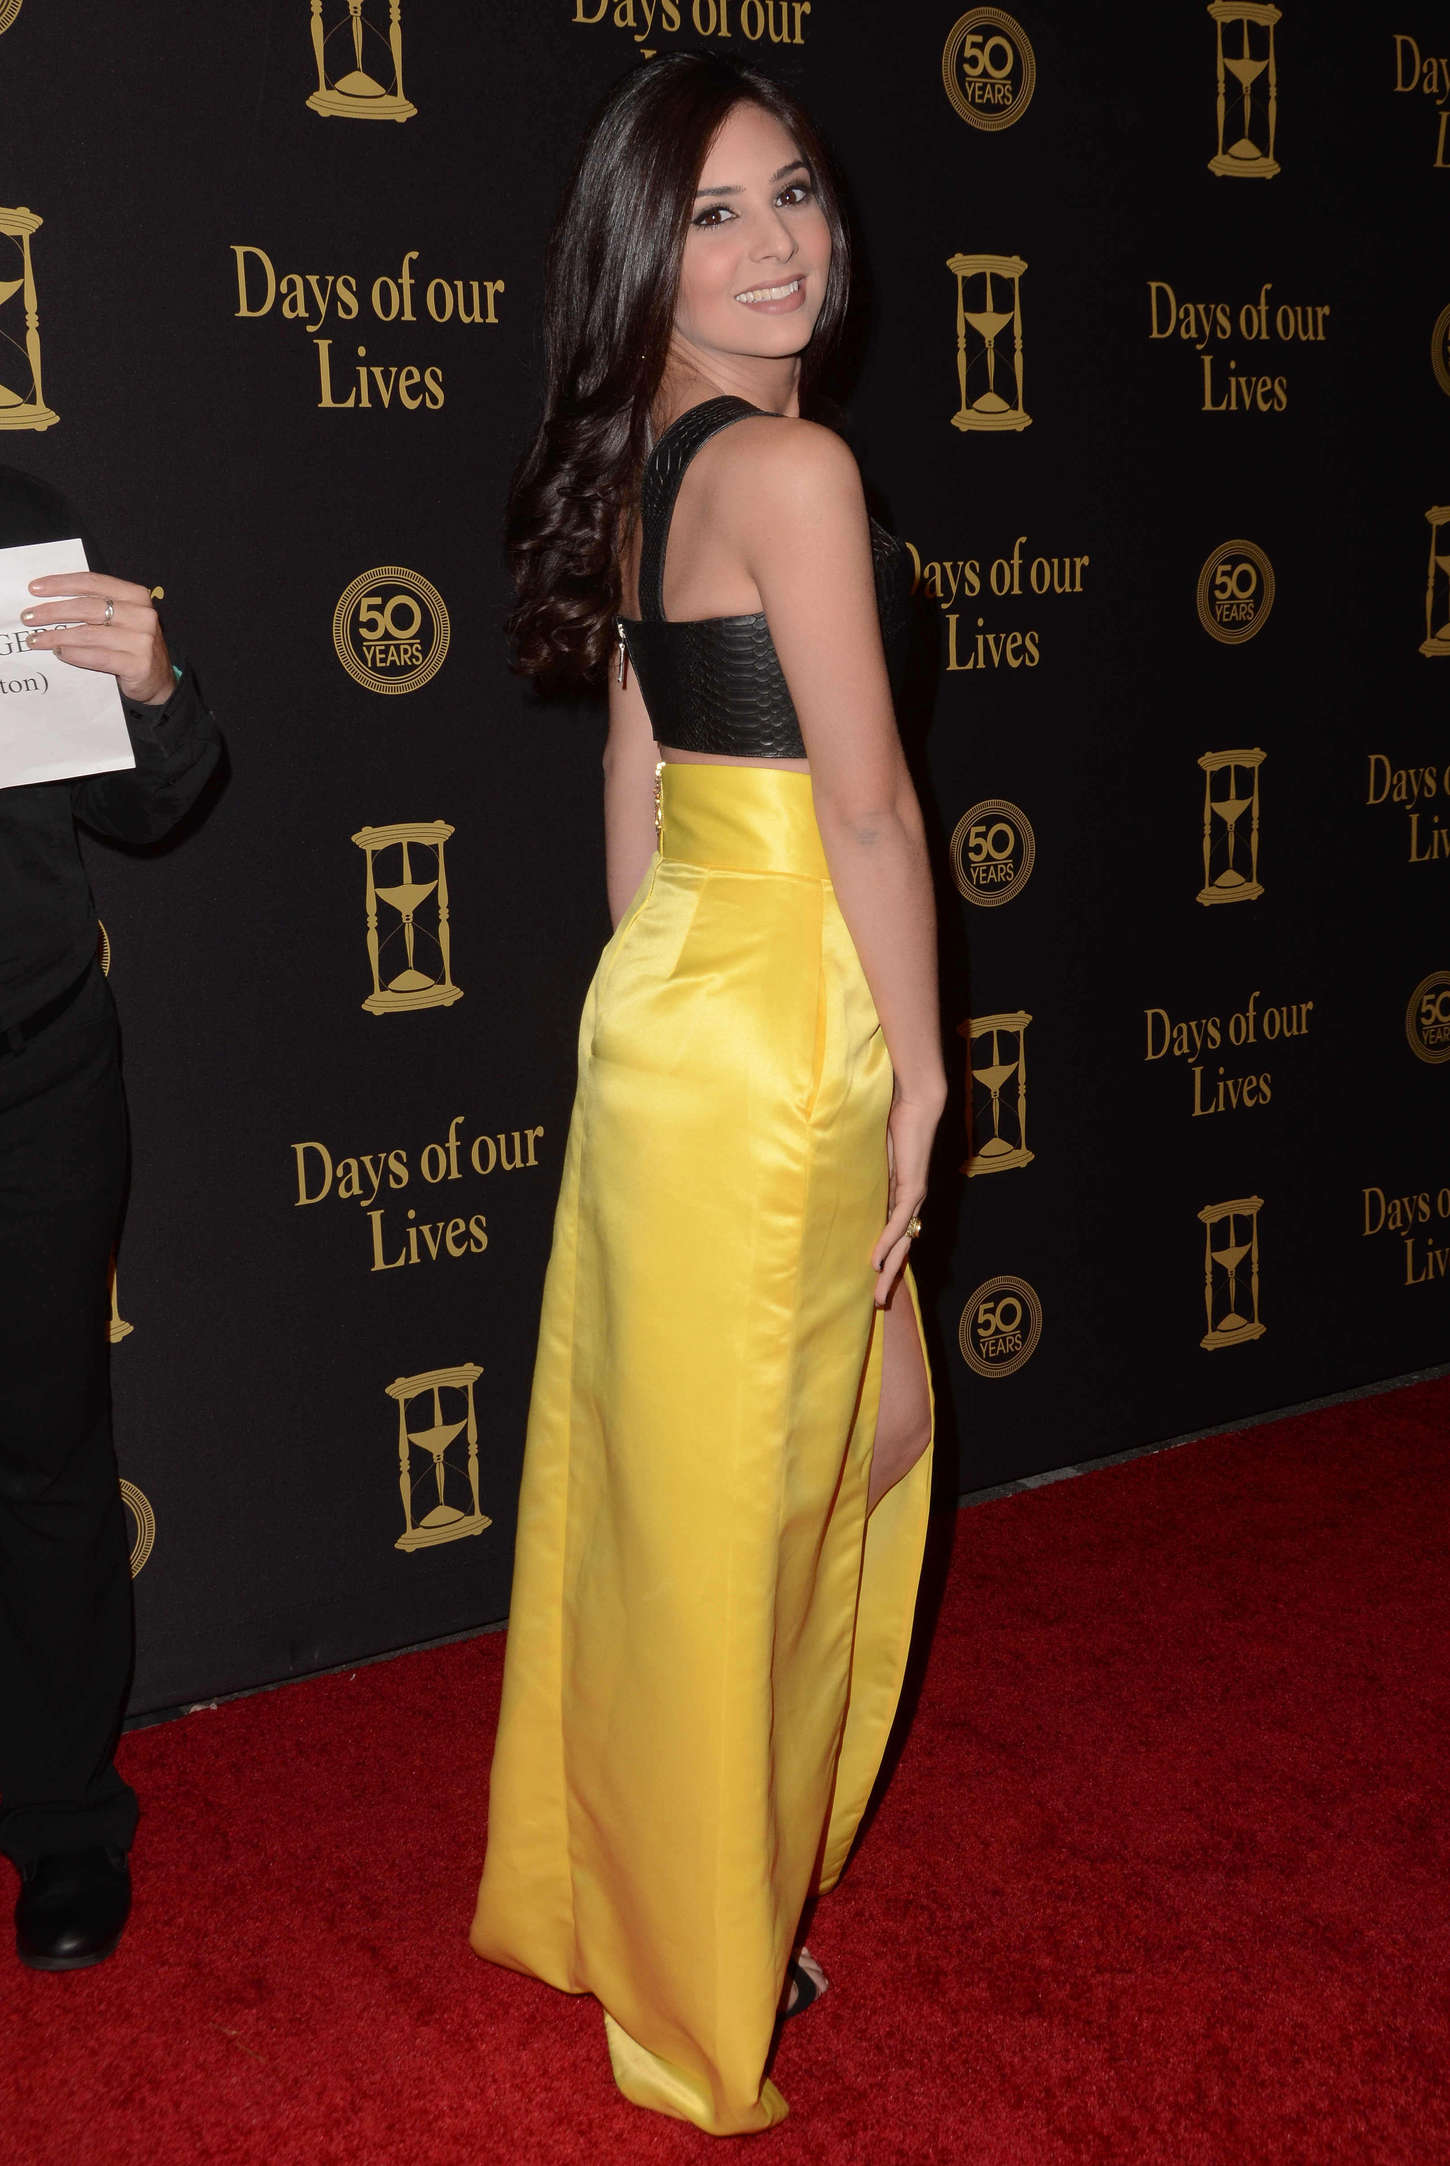 Camila Banus Days of our Lives Anniversary in Los Angeles